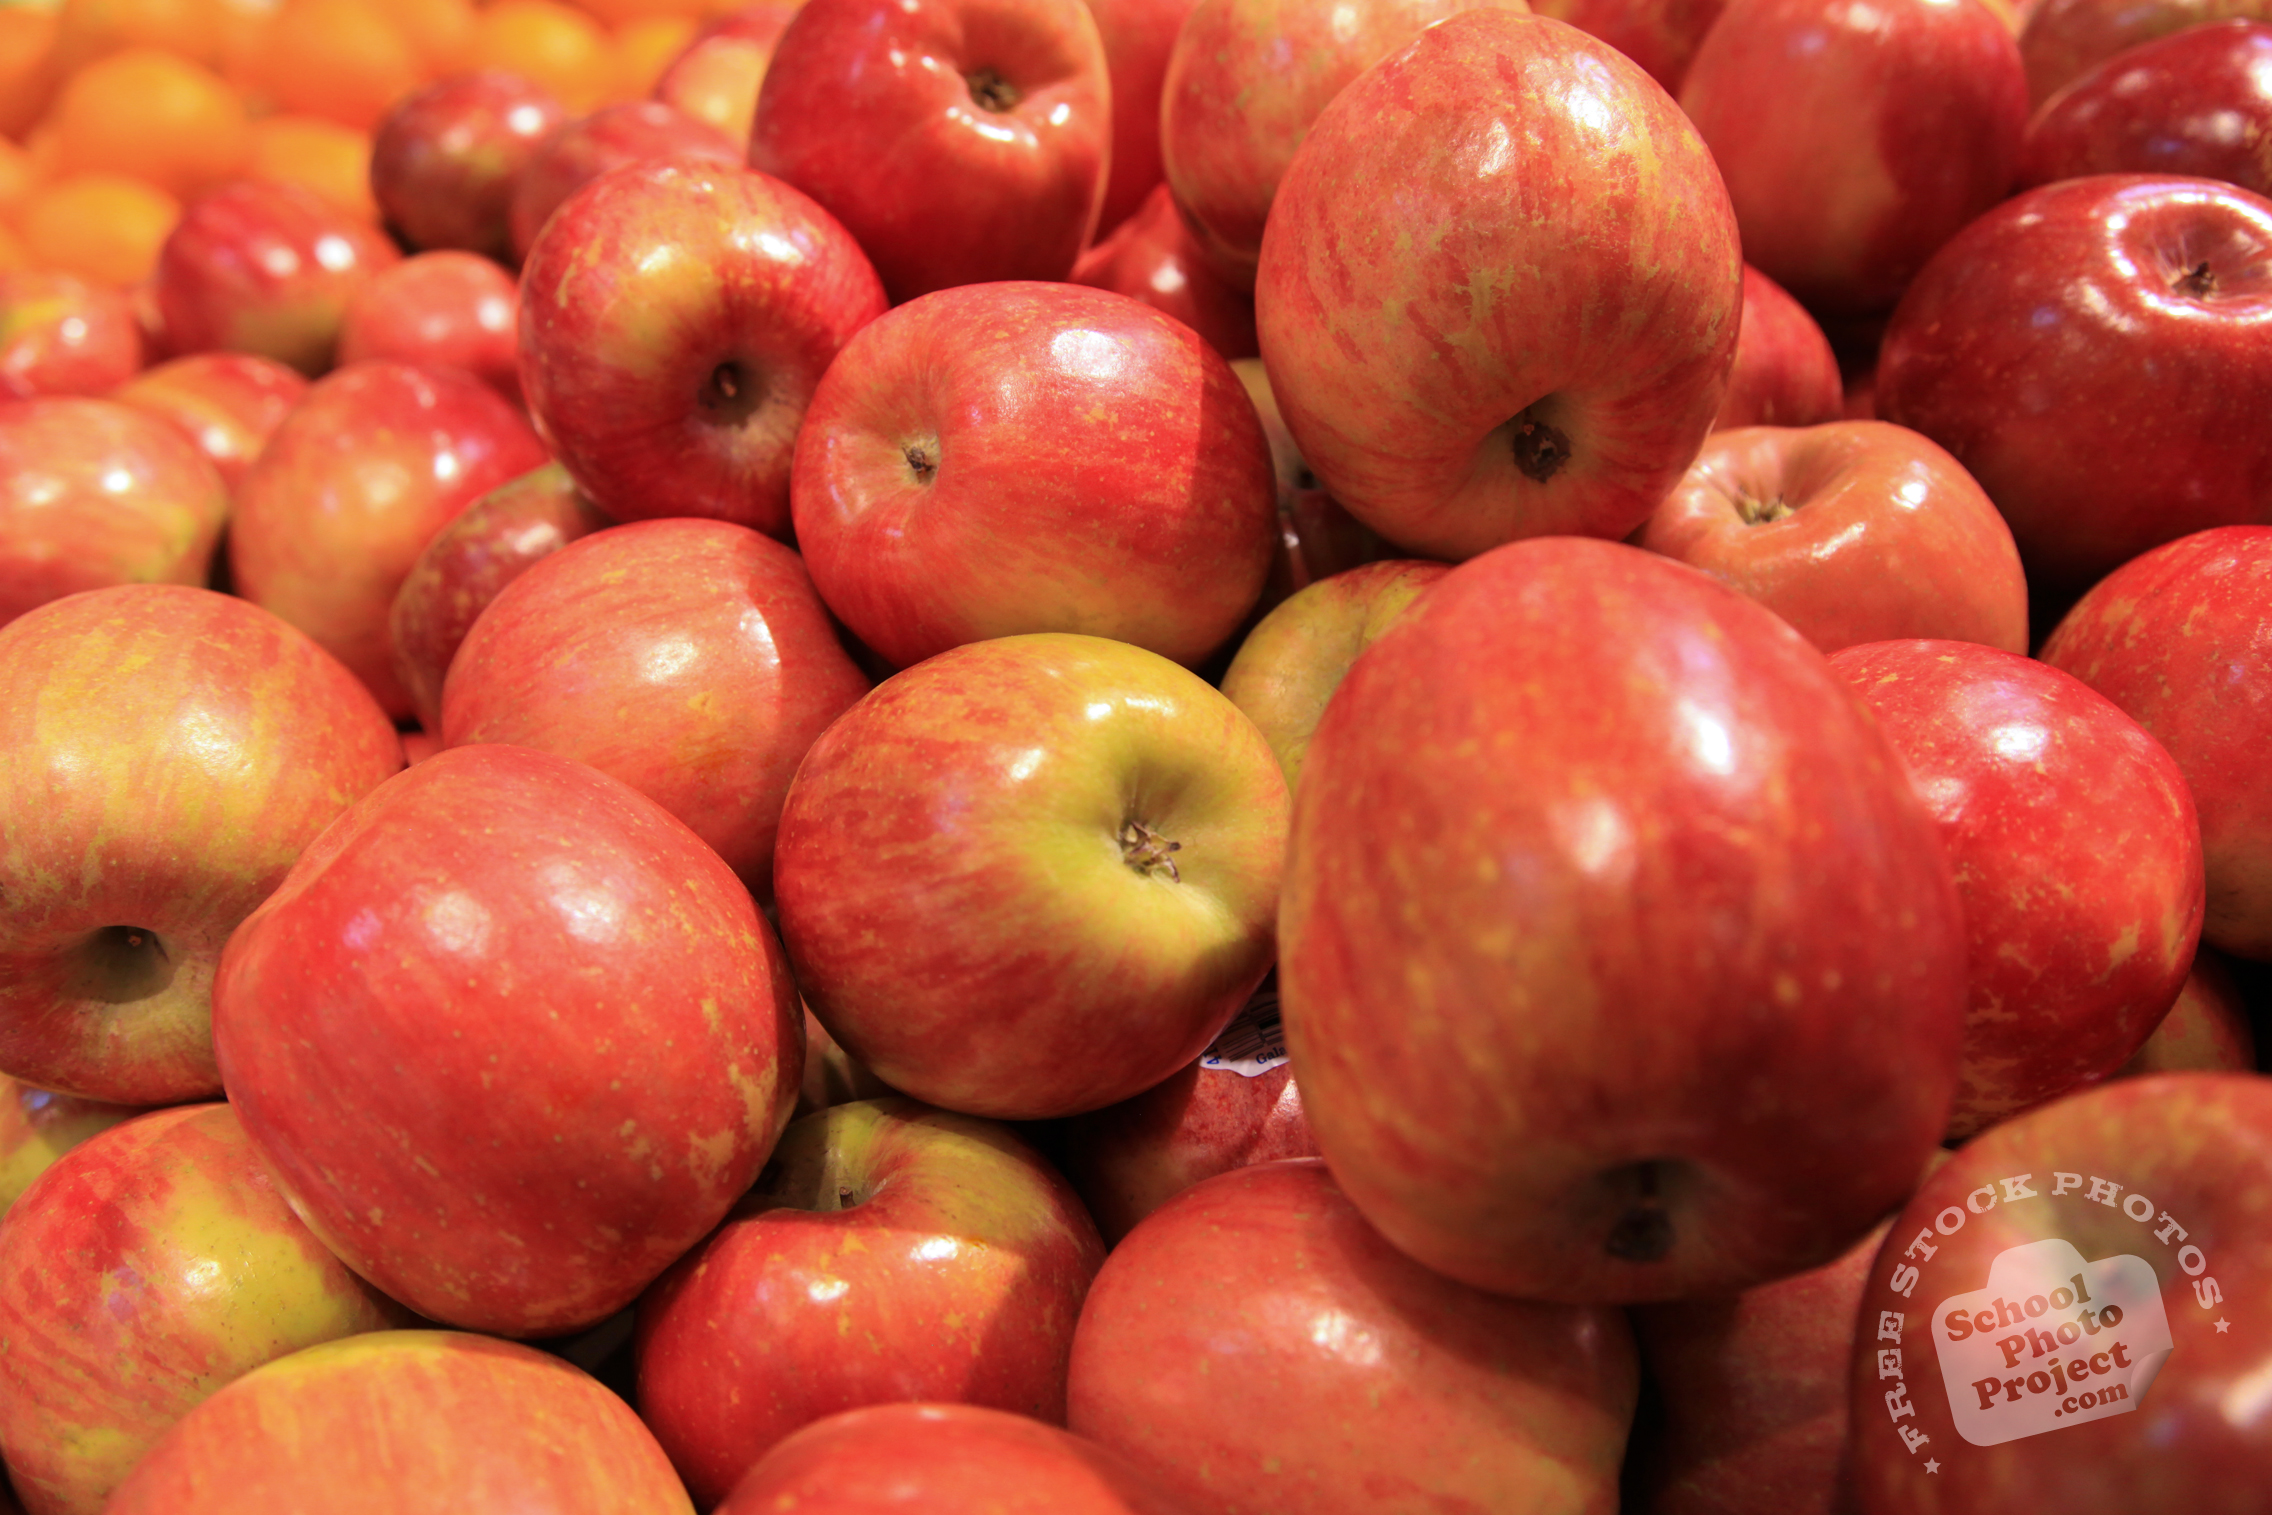 Free Photography Stock Apple Free Stock Photo Image Picture Fuji Apples Royalty Free